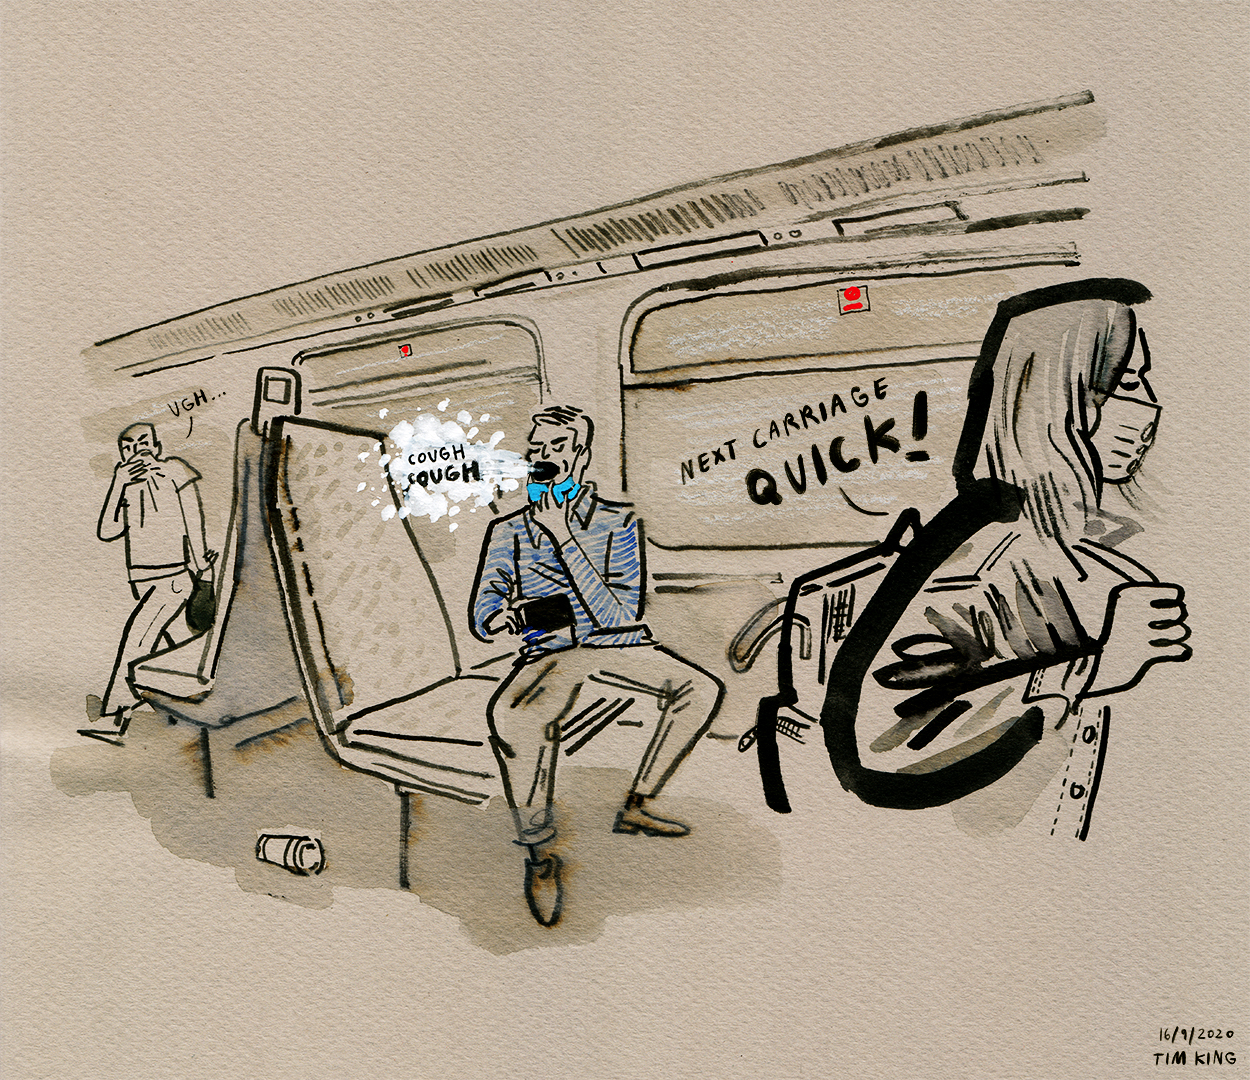 2020_Day-260_Evacuating-the-train-carriage-after-someone-pulls-down-their-mask-to-cough